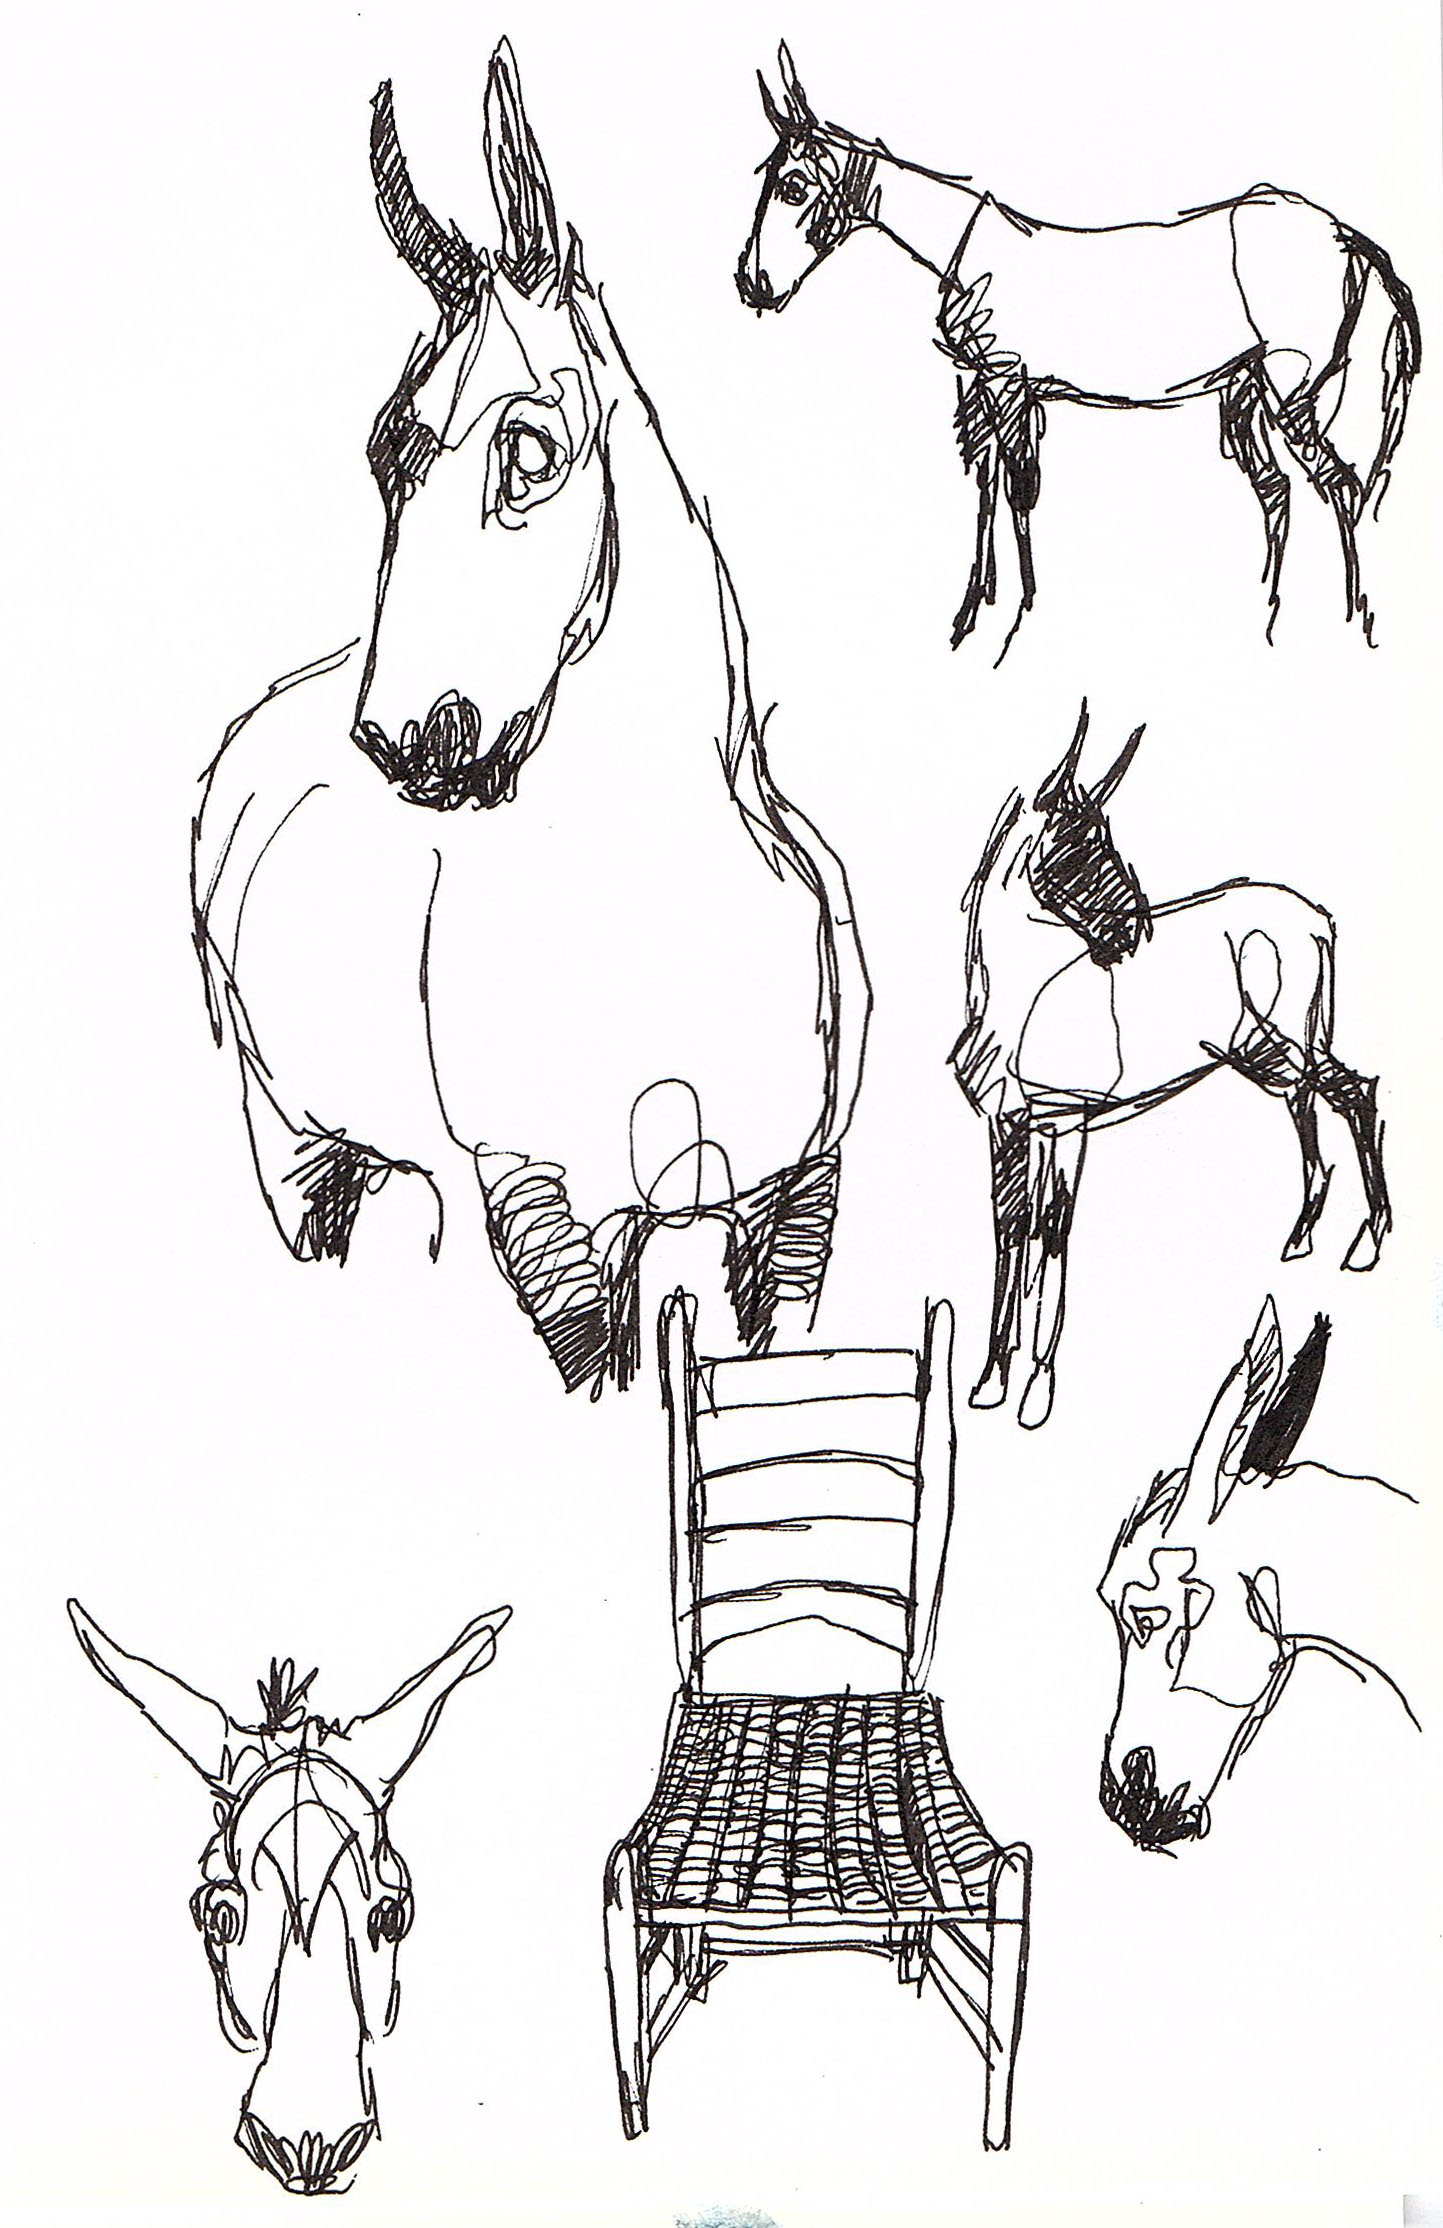 mule sketches